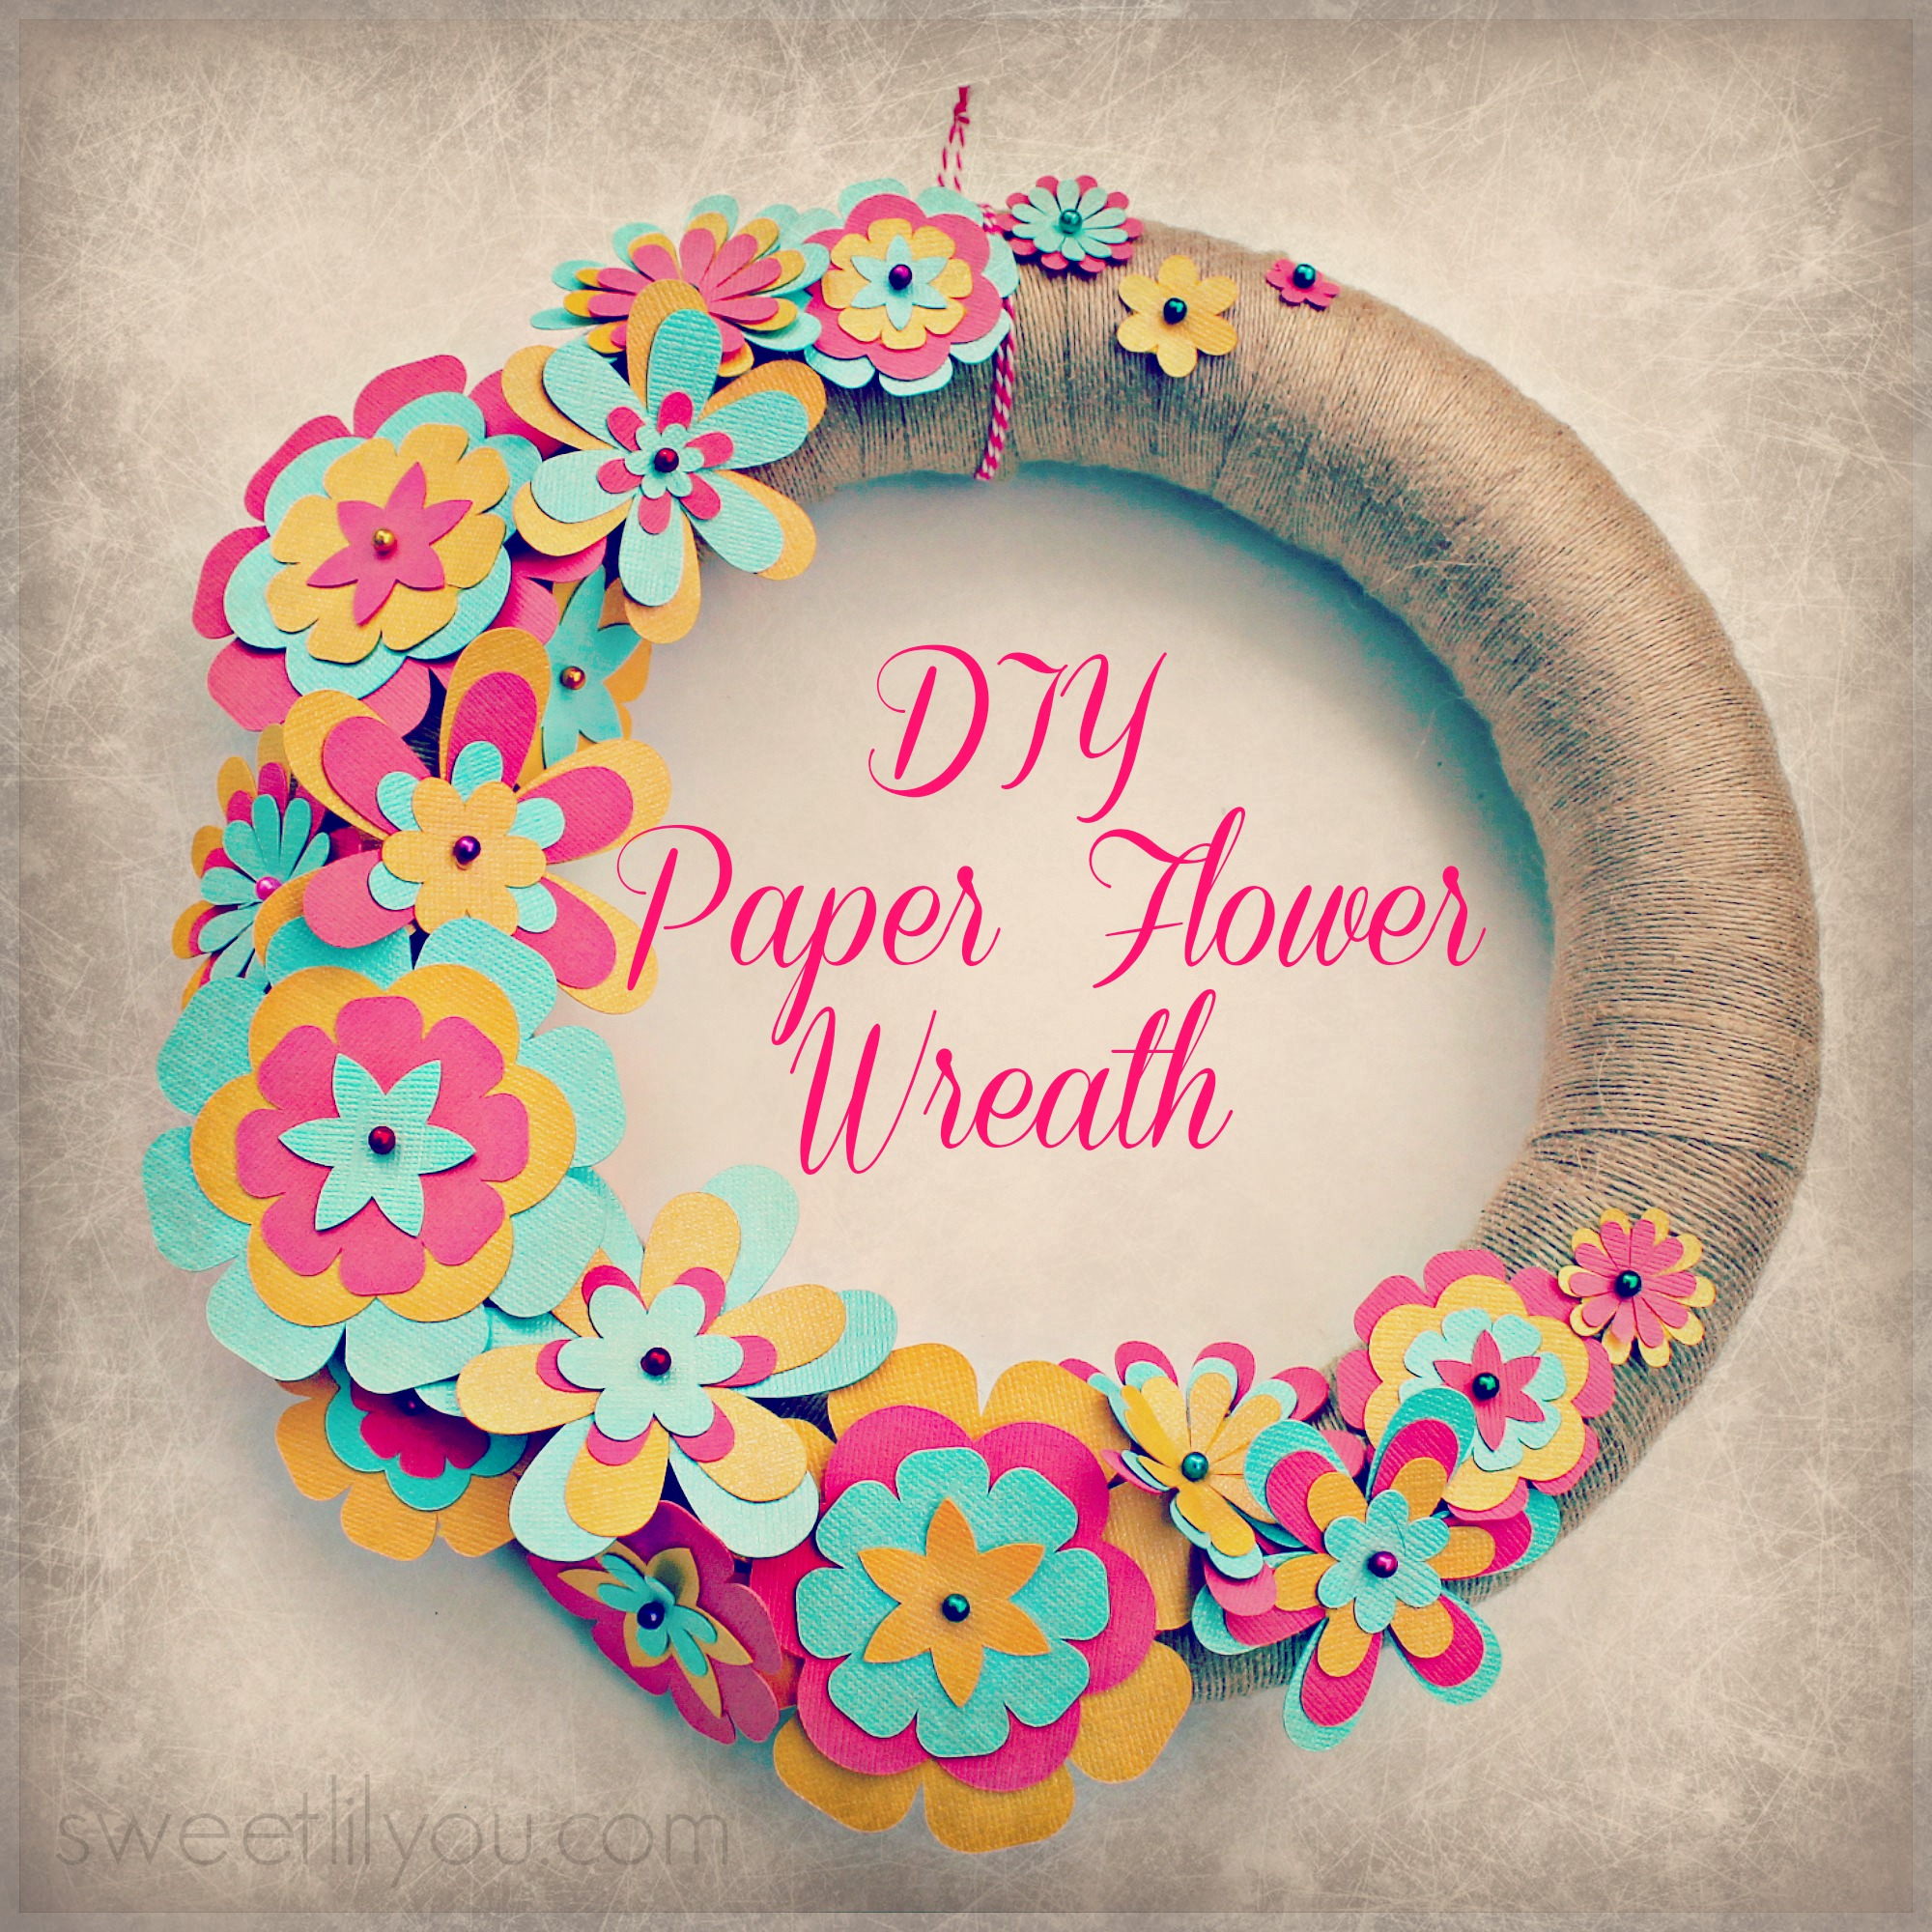 Easy diy paper flower wreath sweet lil you for Art and craft ideas for home decoration